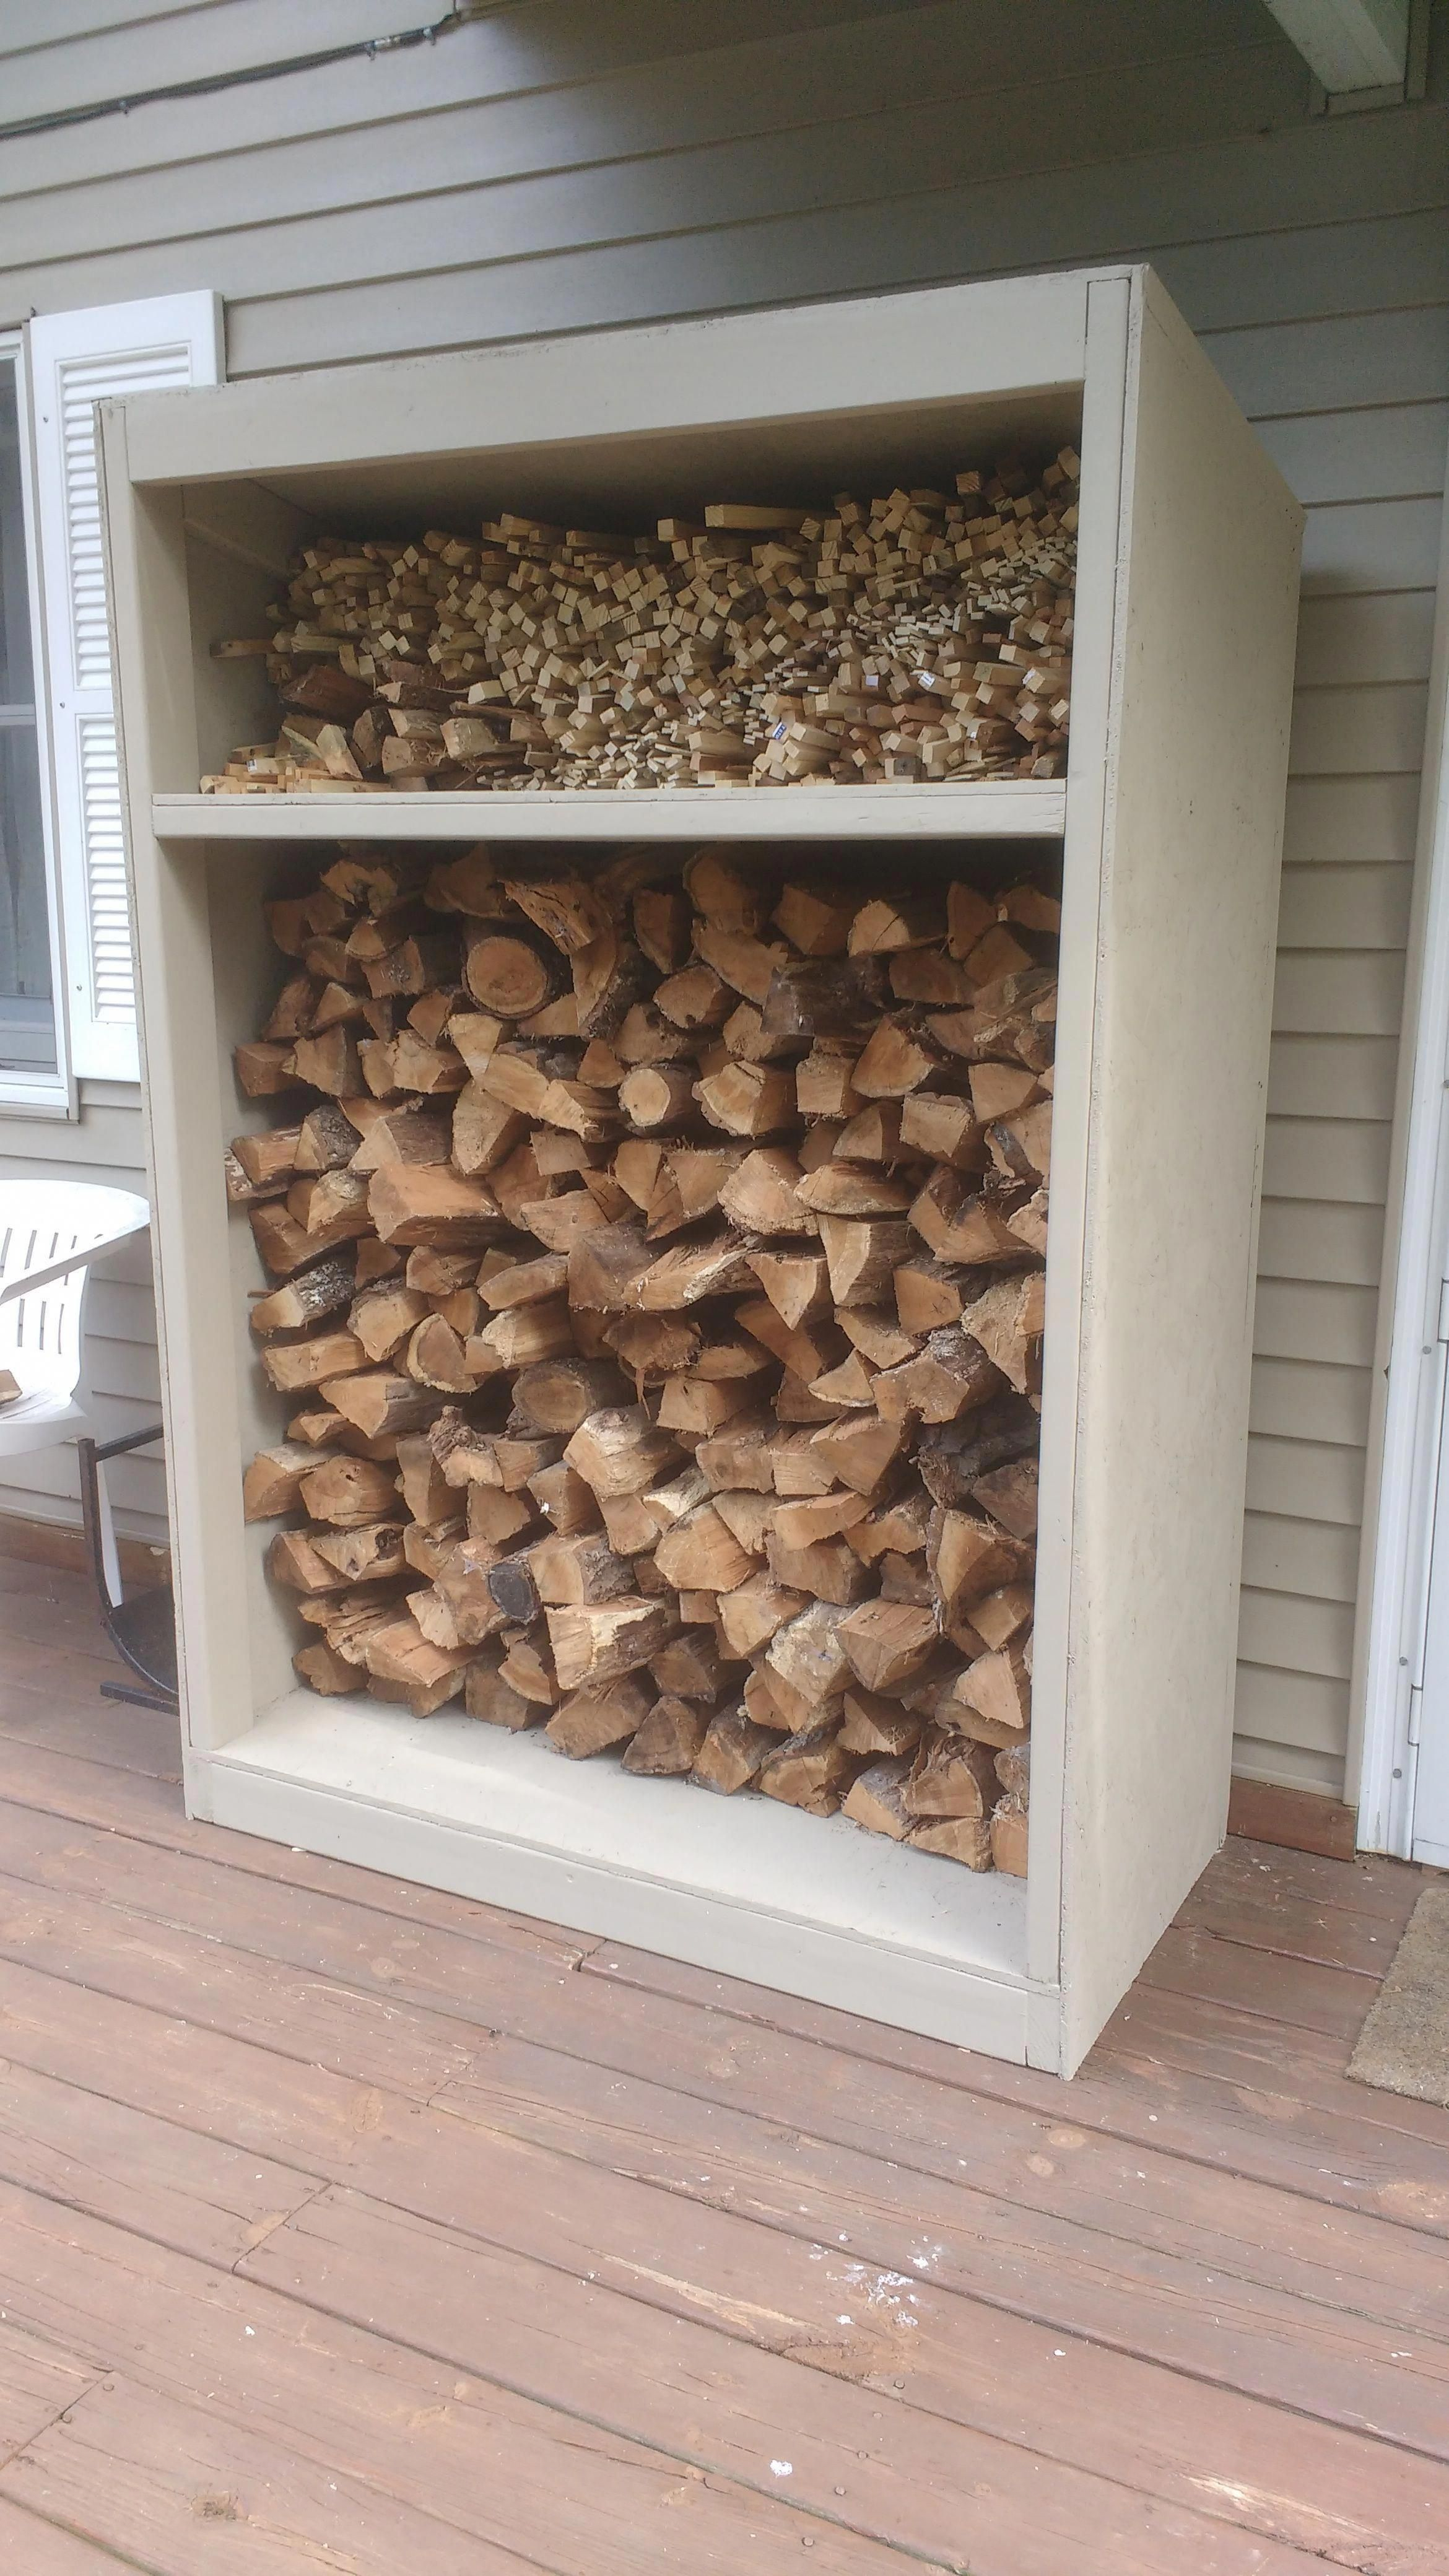 I made a wood shed for the